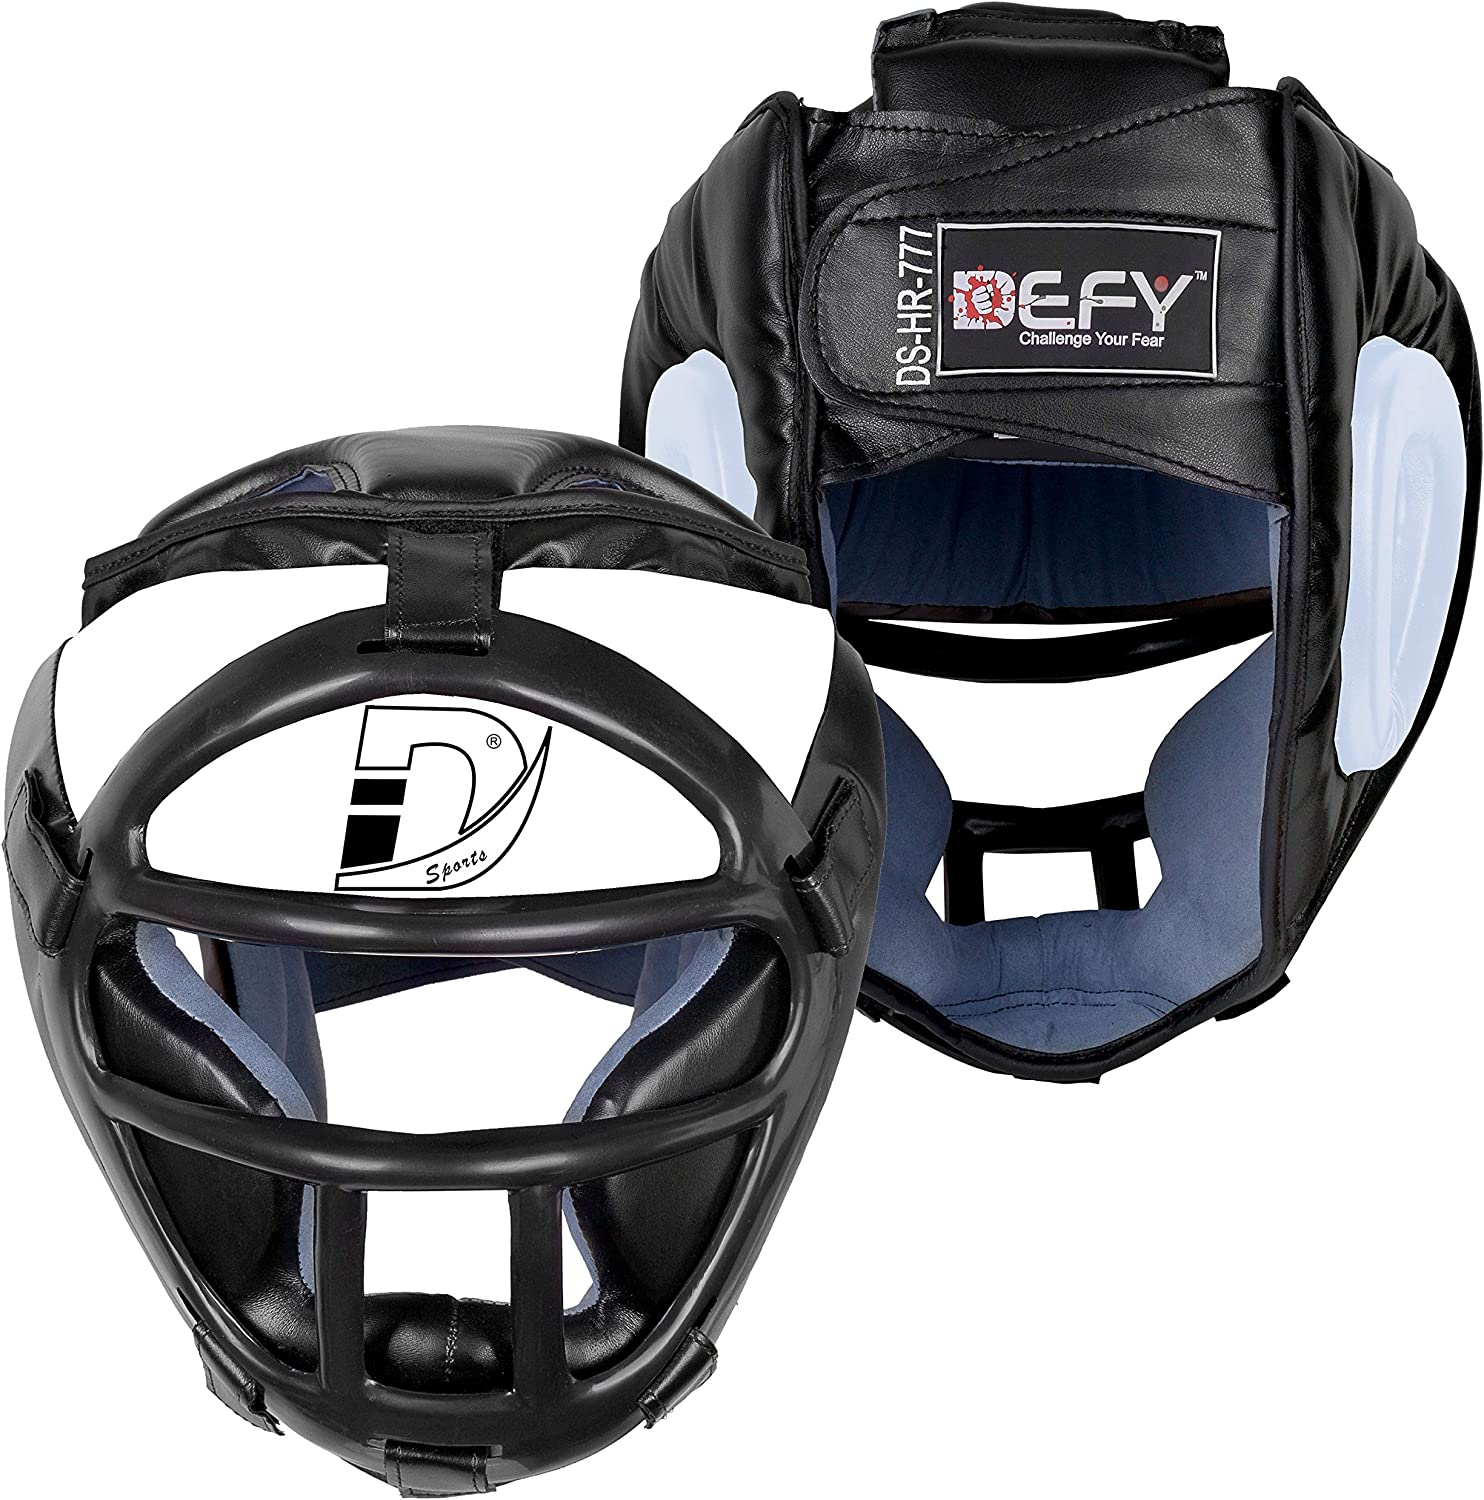 Direct store DEFY Head Guard Premium Luxury goods Synthetic Leather MMA U Gear Boxing